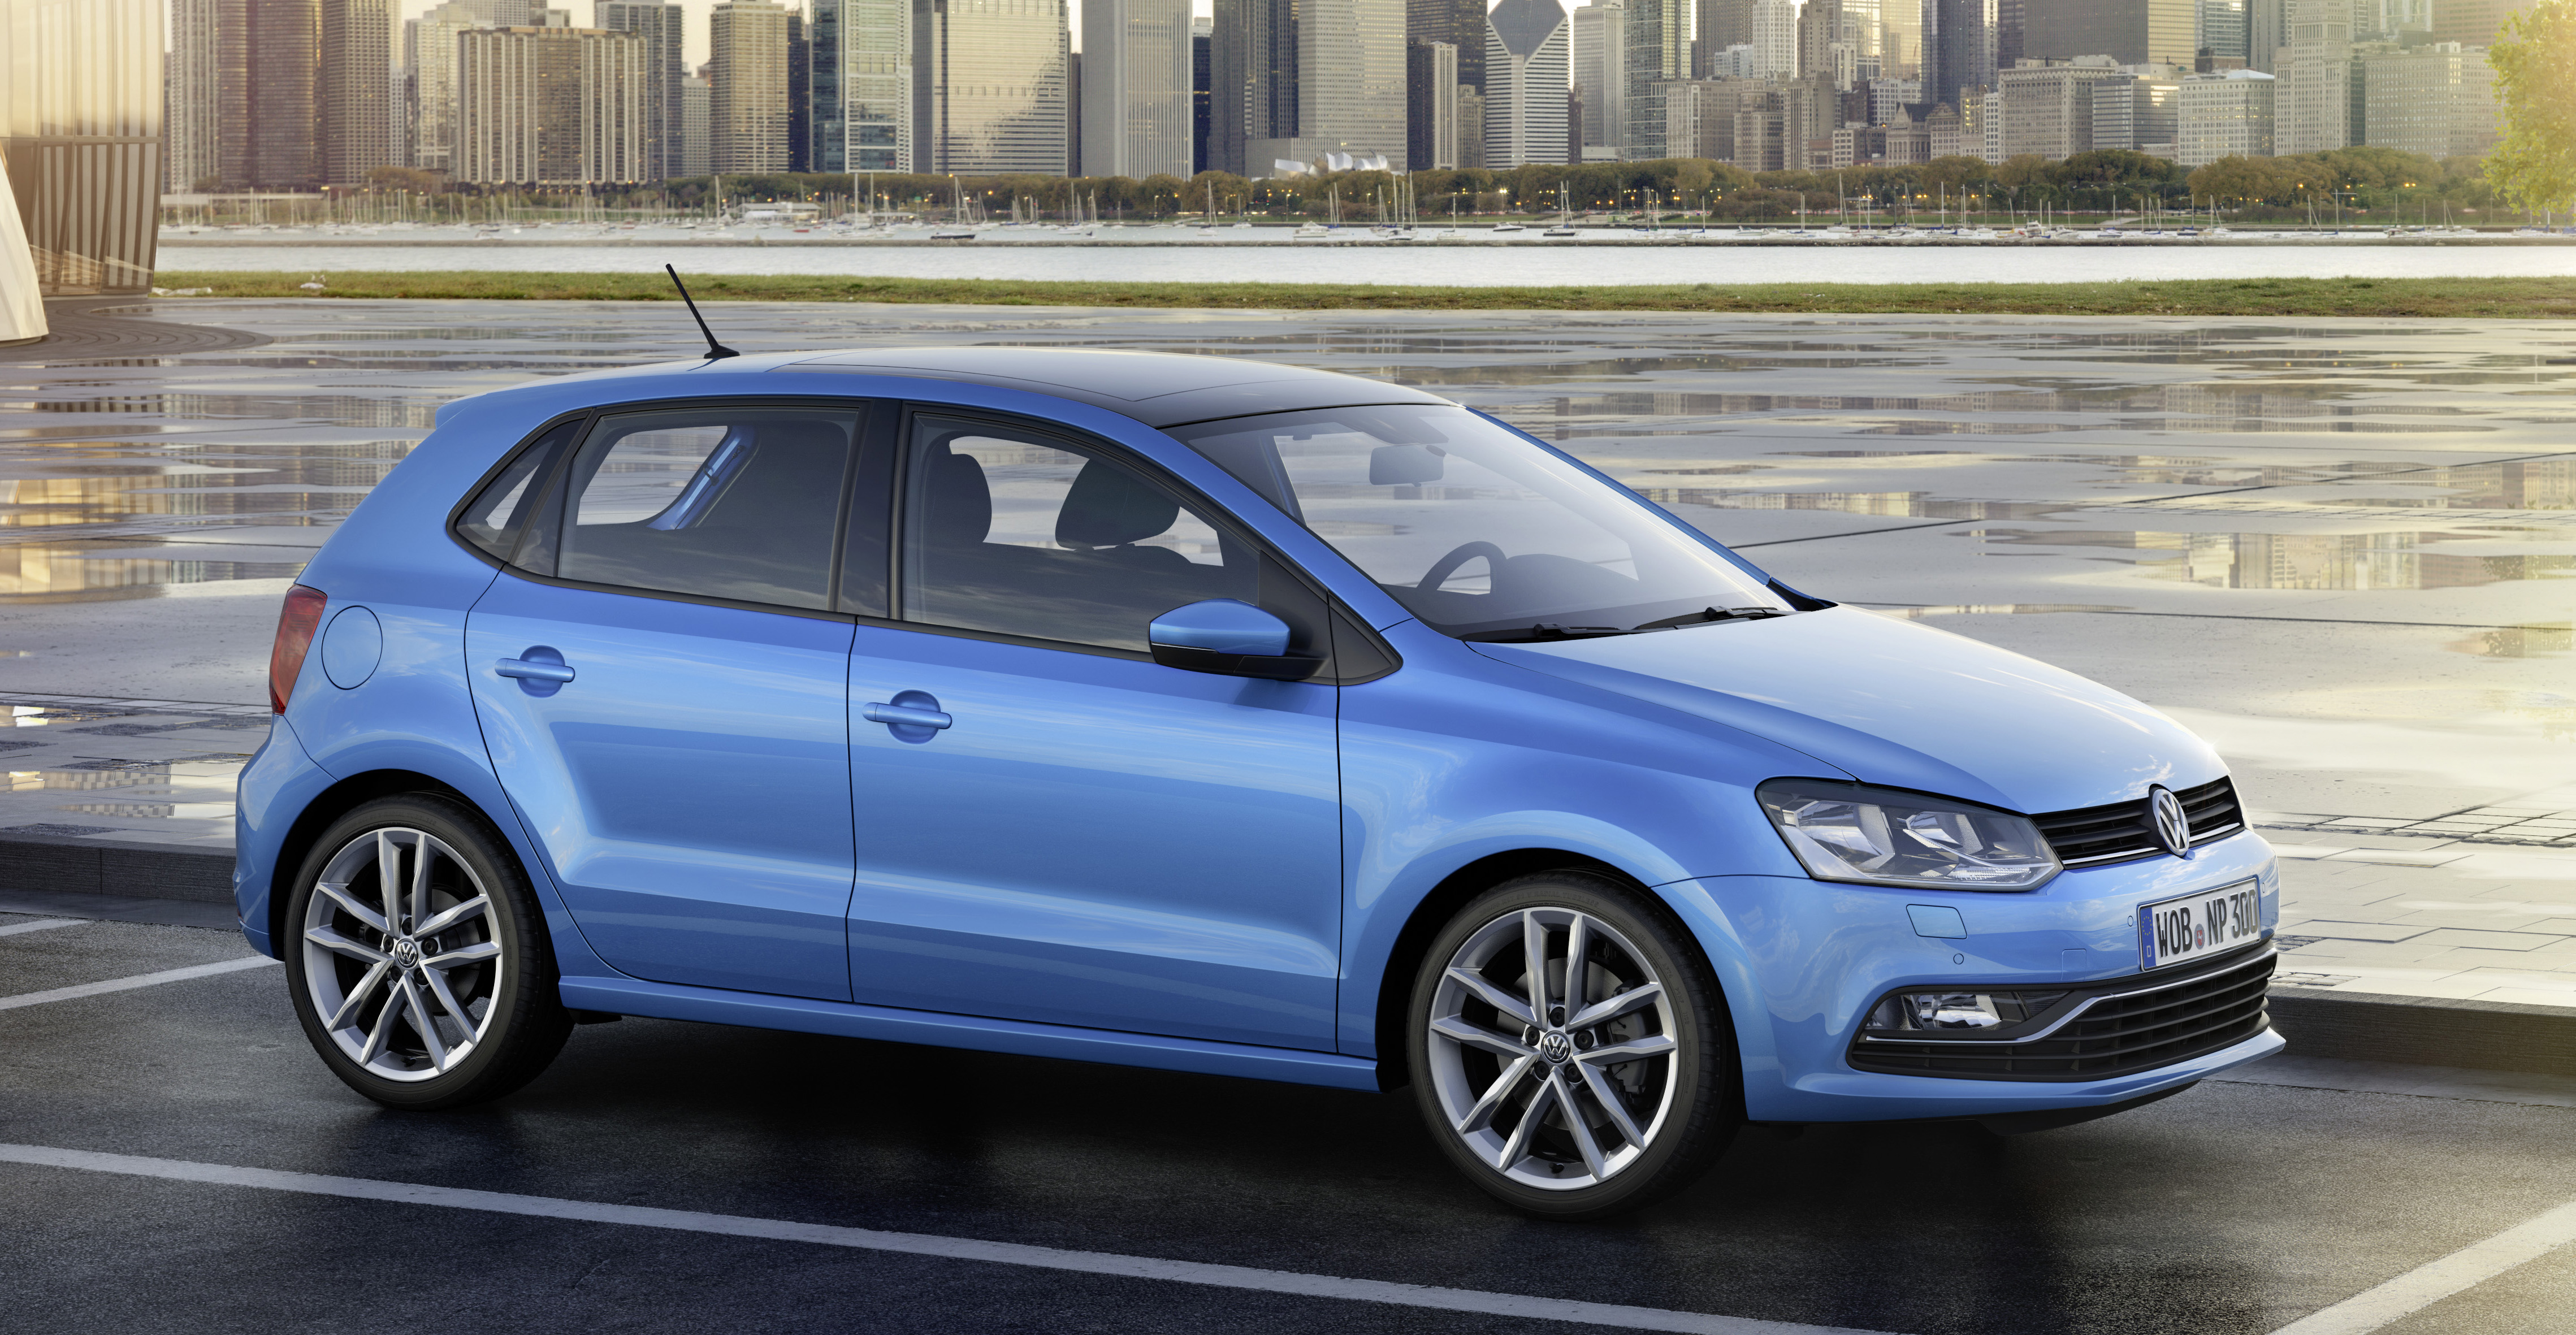 2014 Volkswagen Polo Facelift Gets New Technology Image 224997